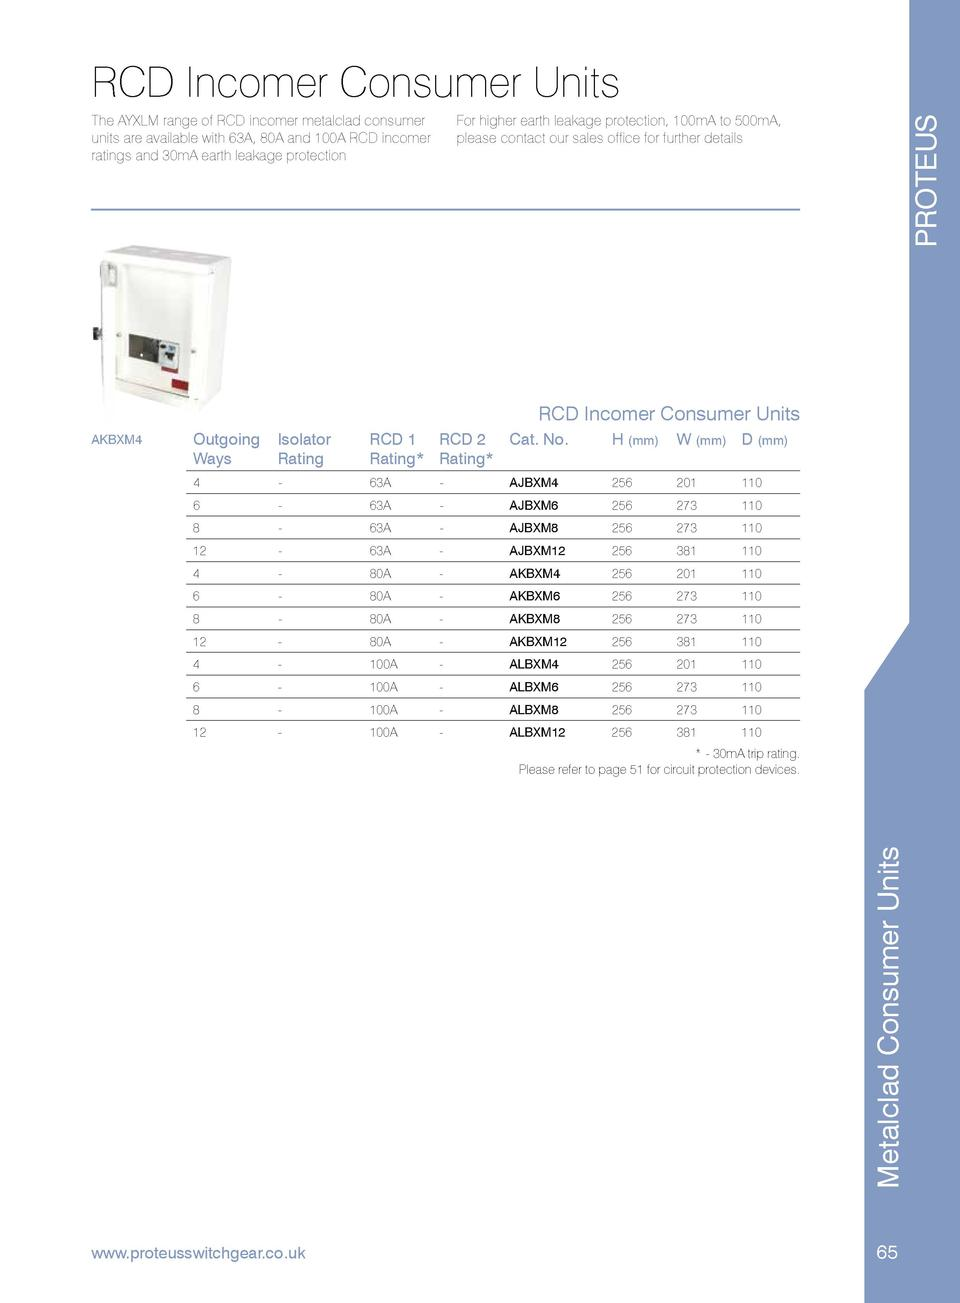 RCD Incomer Consumer Units For higher earth leakage protection, 100mA to 500mA, please contact our sales office for furthe...